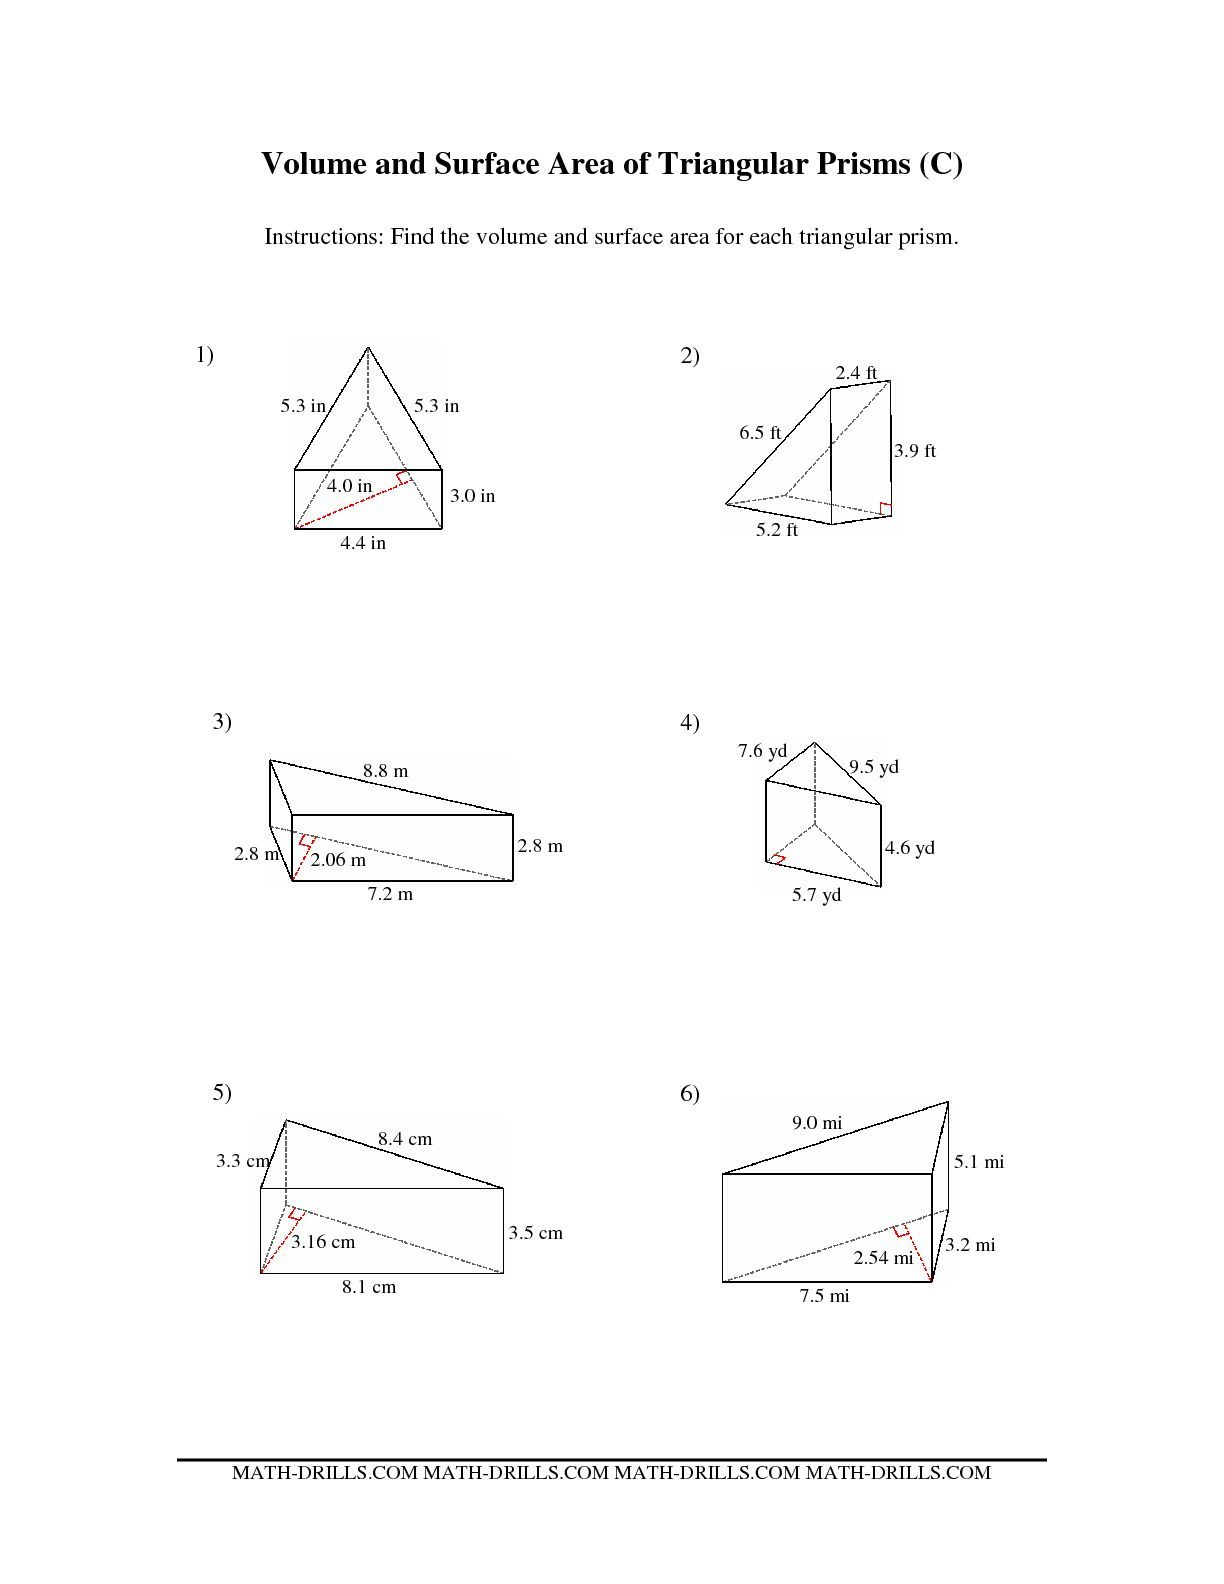 worksheet Volume And Surface Area Worksheets Grade 7 the volume and surface area of triangular prisms c math worksheet from measurement